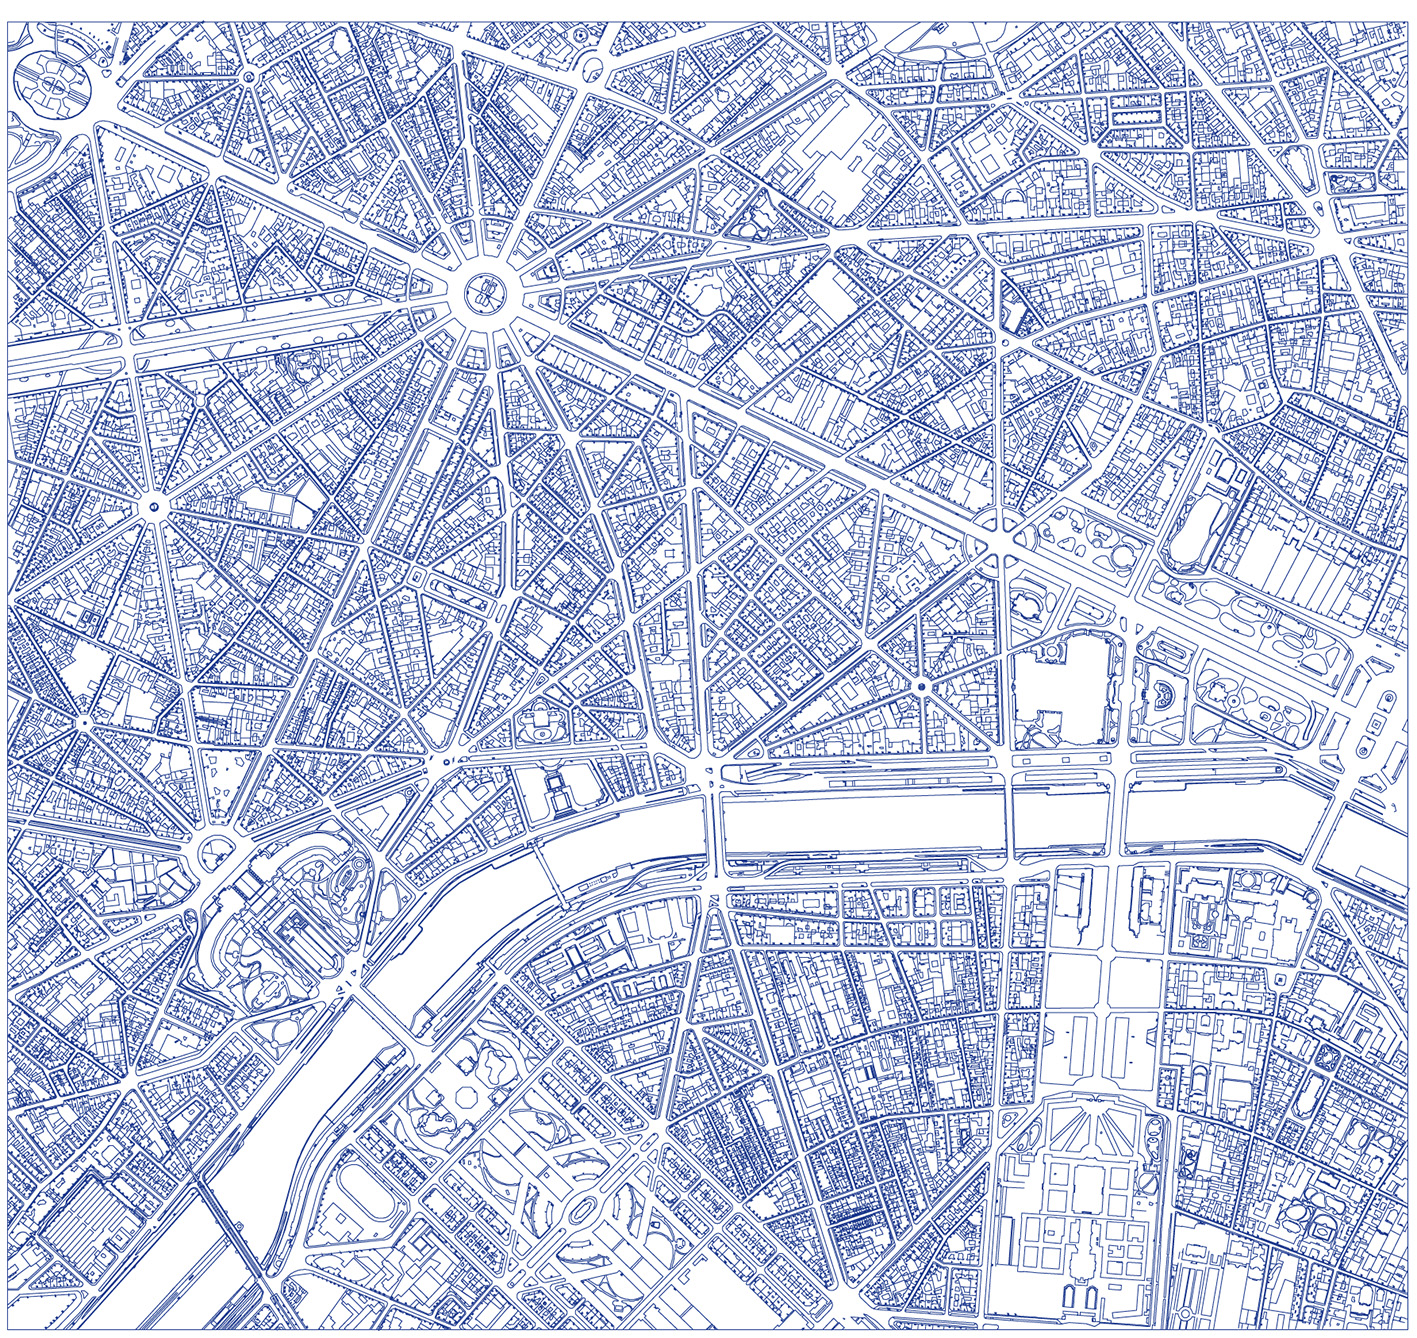 04 Selected Urban fabric for experimentation